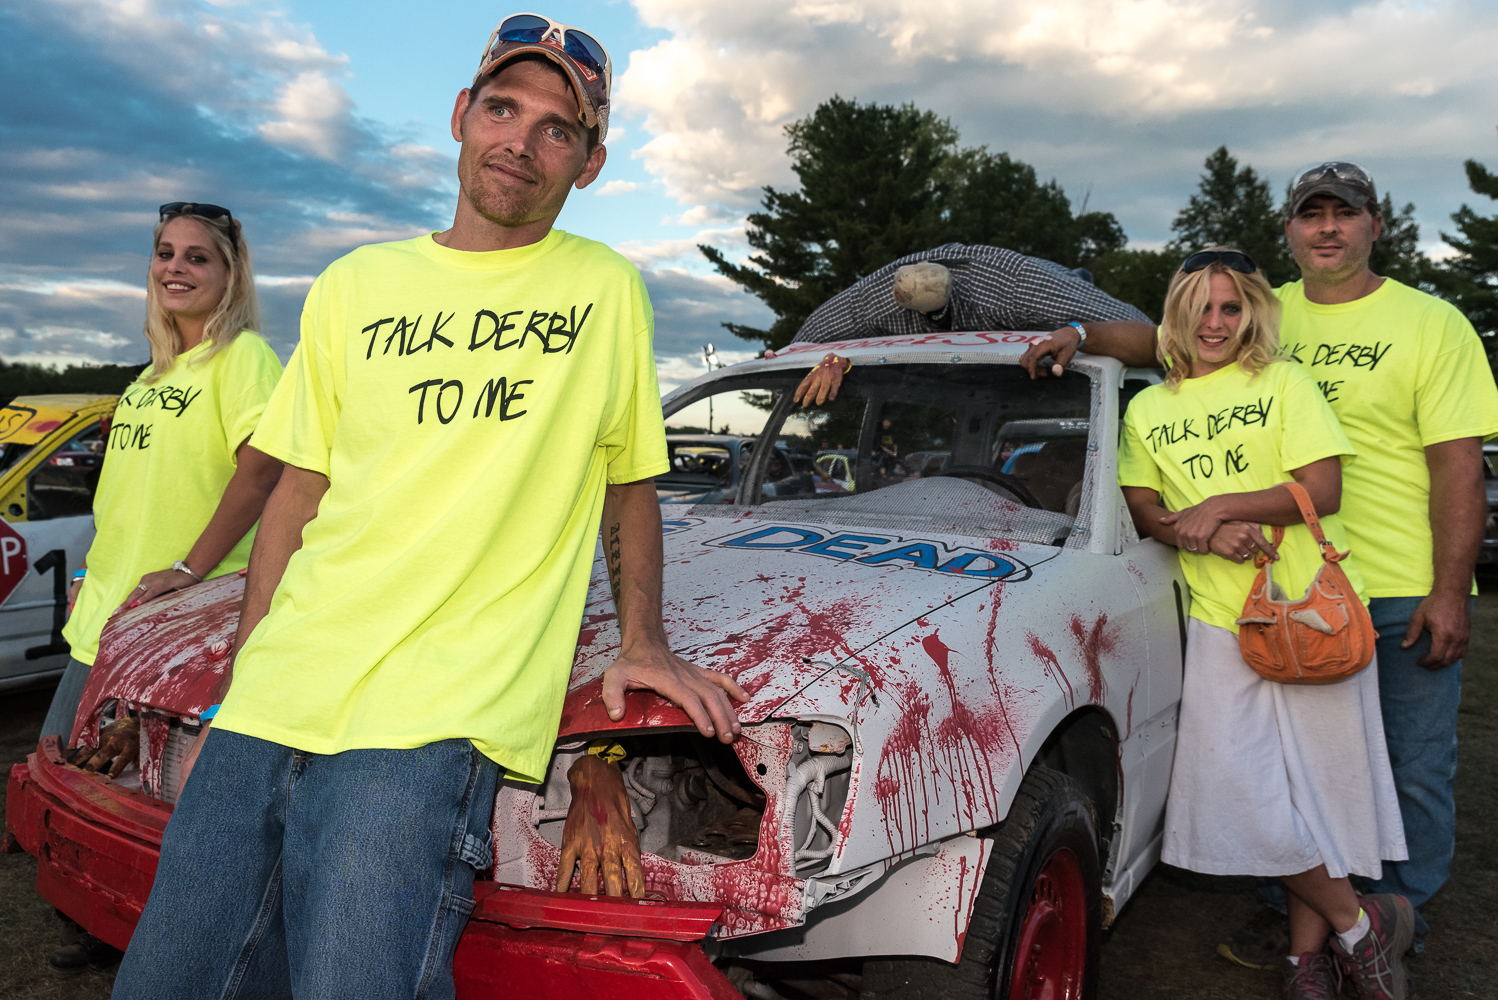 Drivers in the annual Champlain Valley Fair demolition derby. Photo by Bob LoCicero.